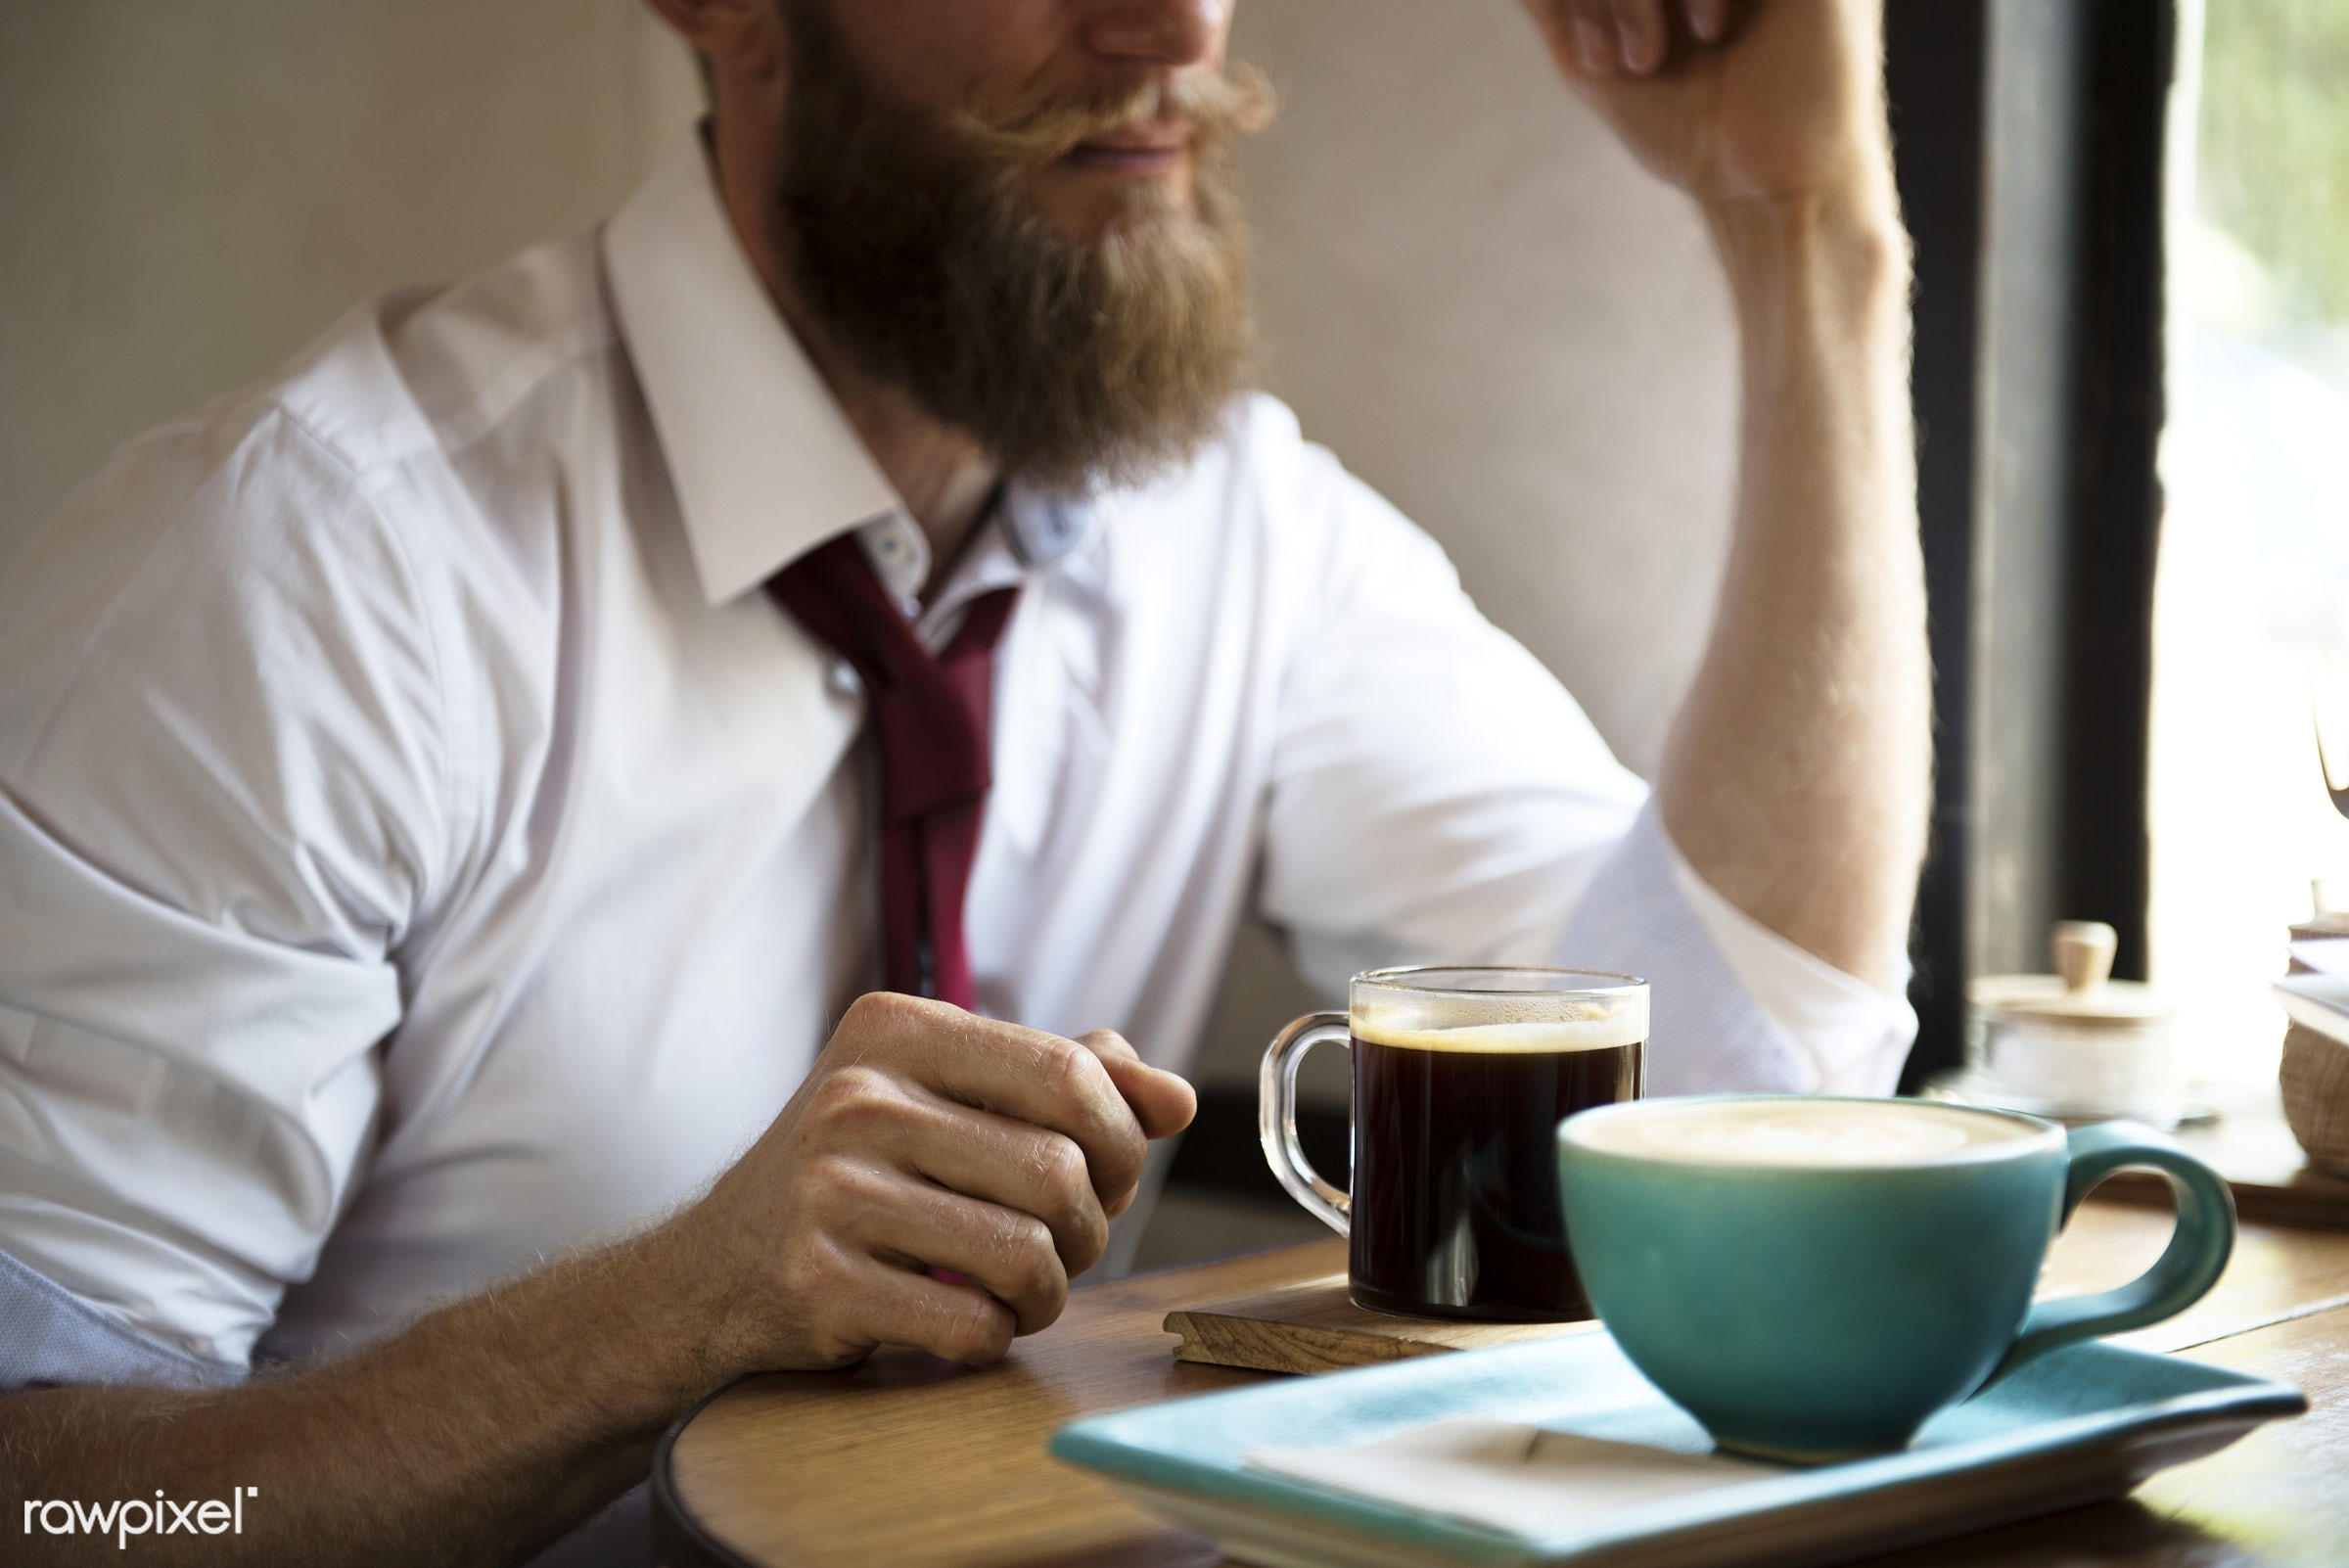 cup, person, restaurant, drinks, business, break, man, coffee, leisure, table, corporate, beverage, pastime, beard, cafe,...